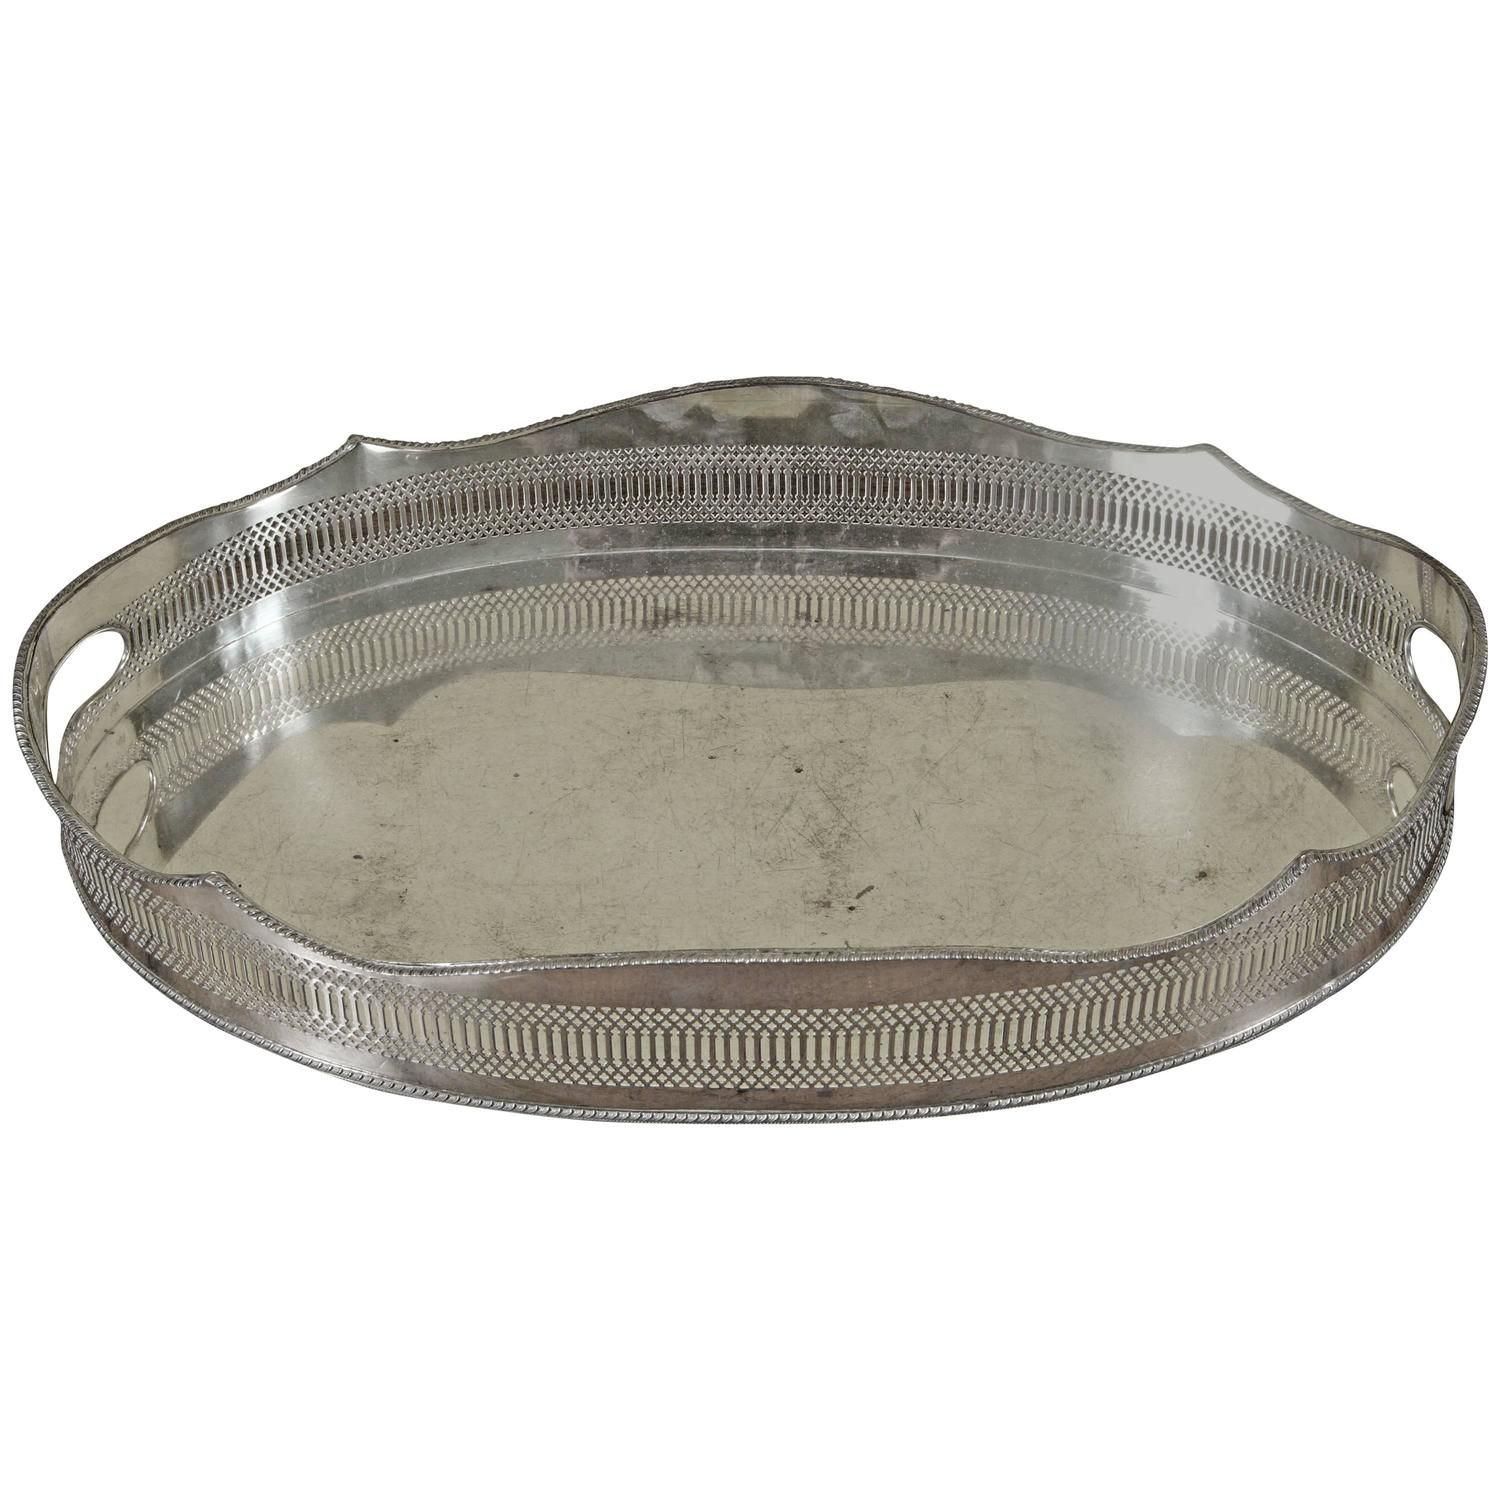 A Large Oval Early Sheffield Silver Gallery Tray With Hand